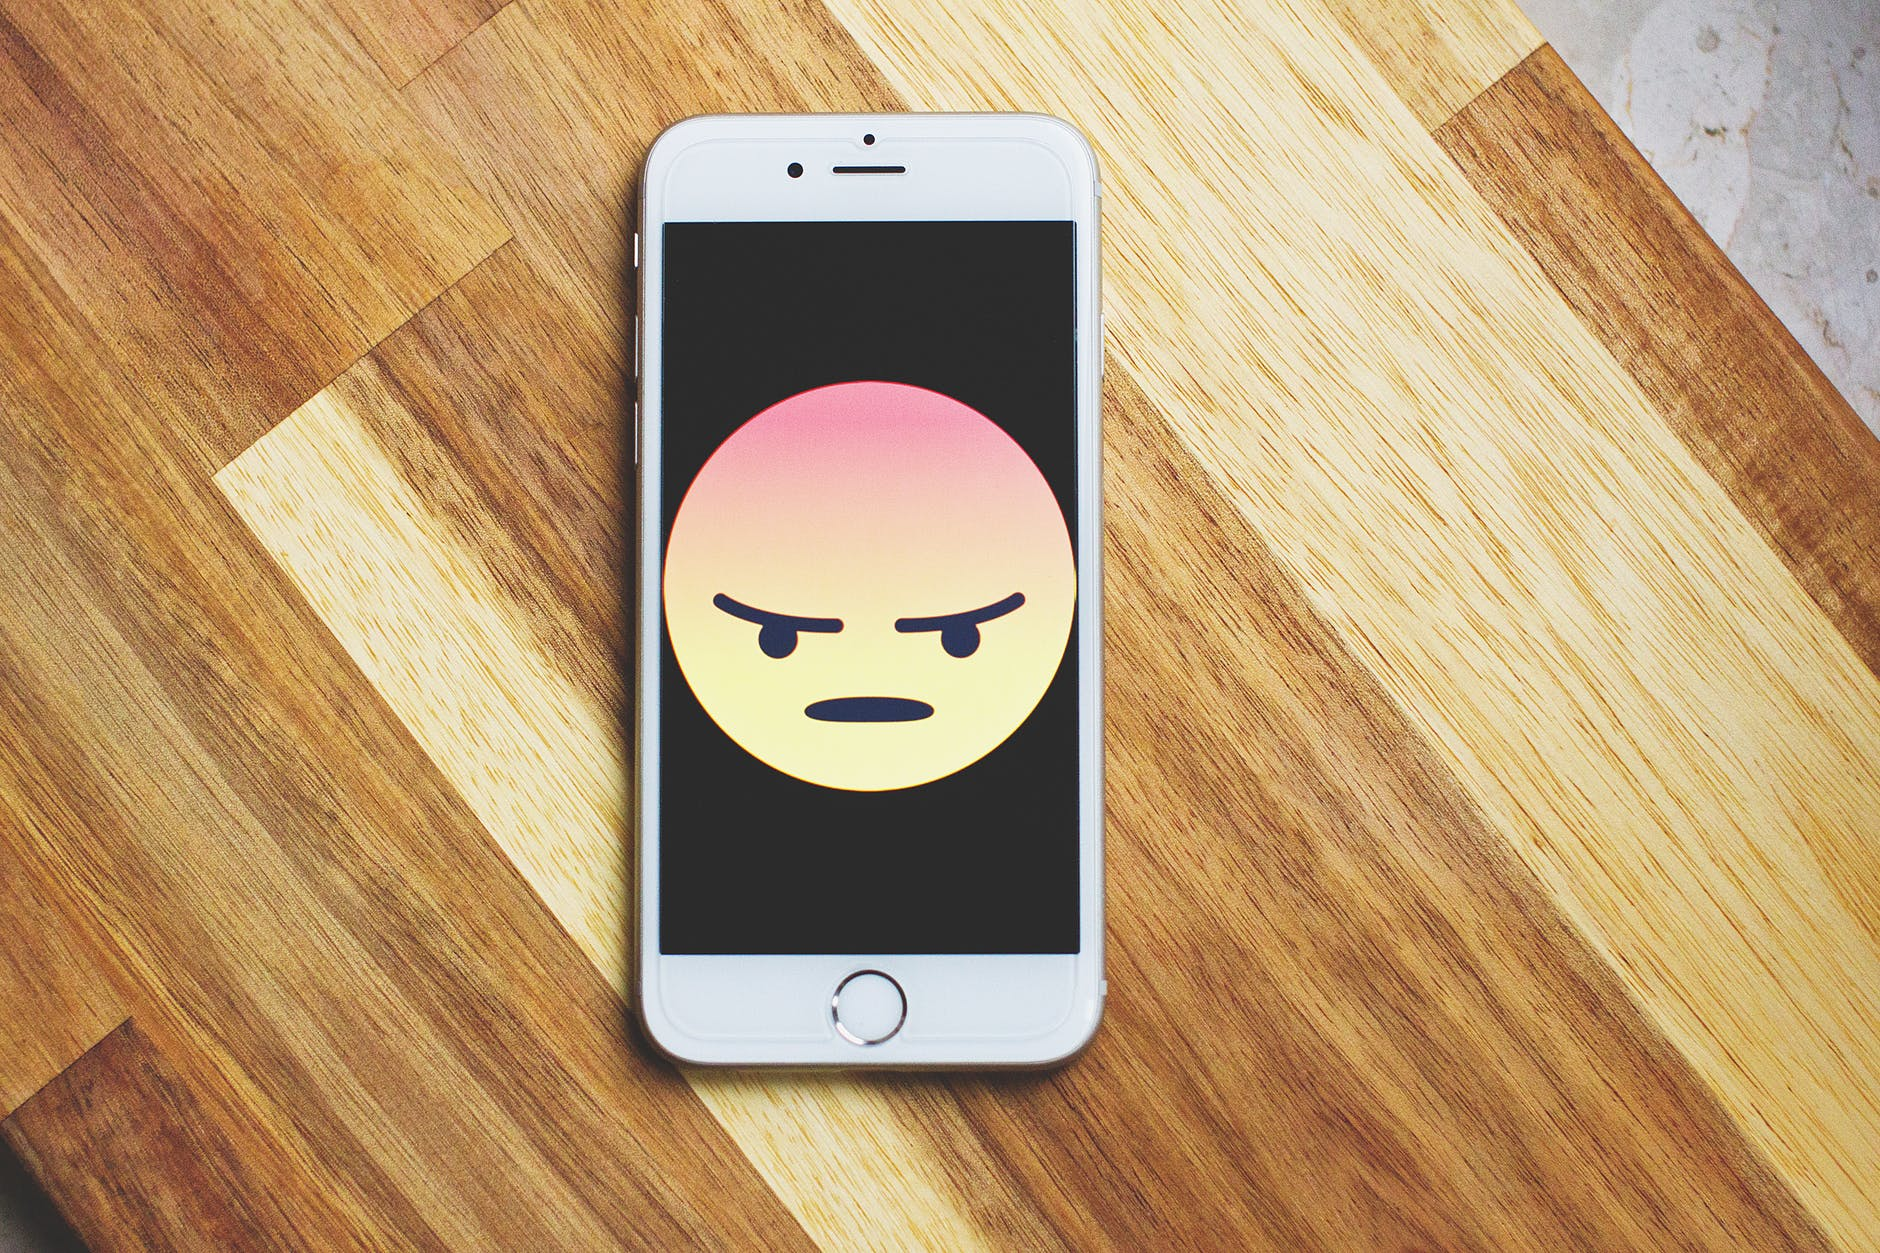 phone with angry face emoji